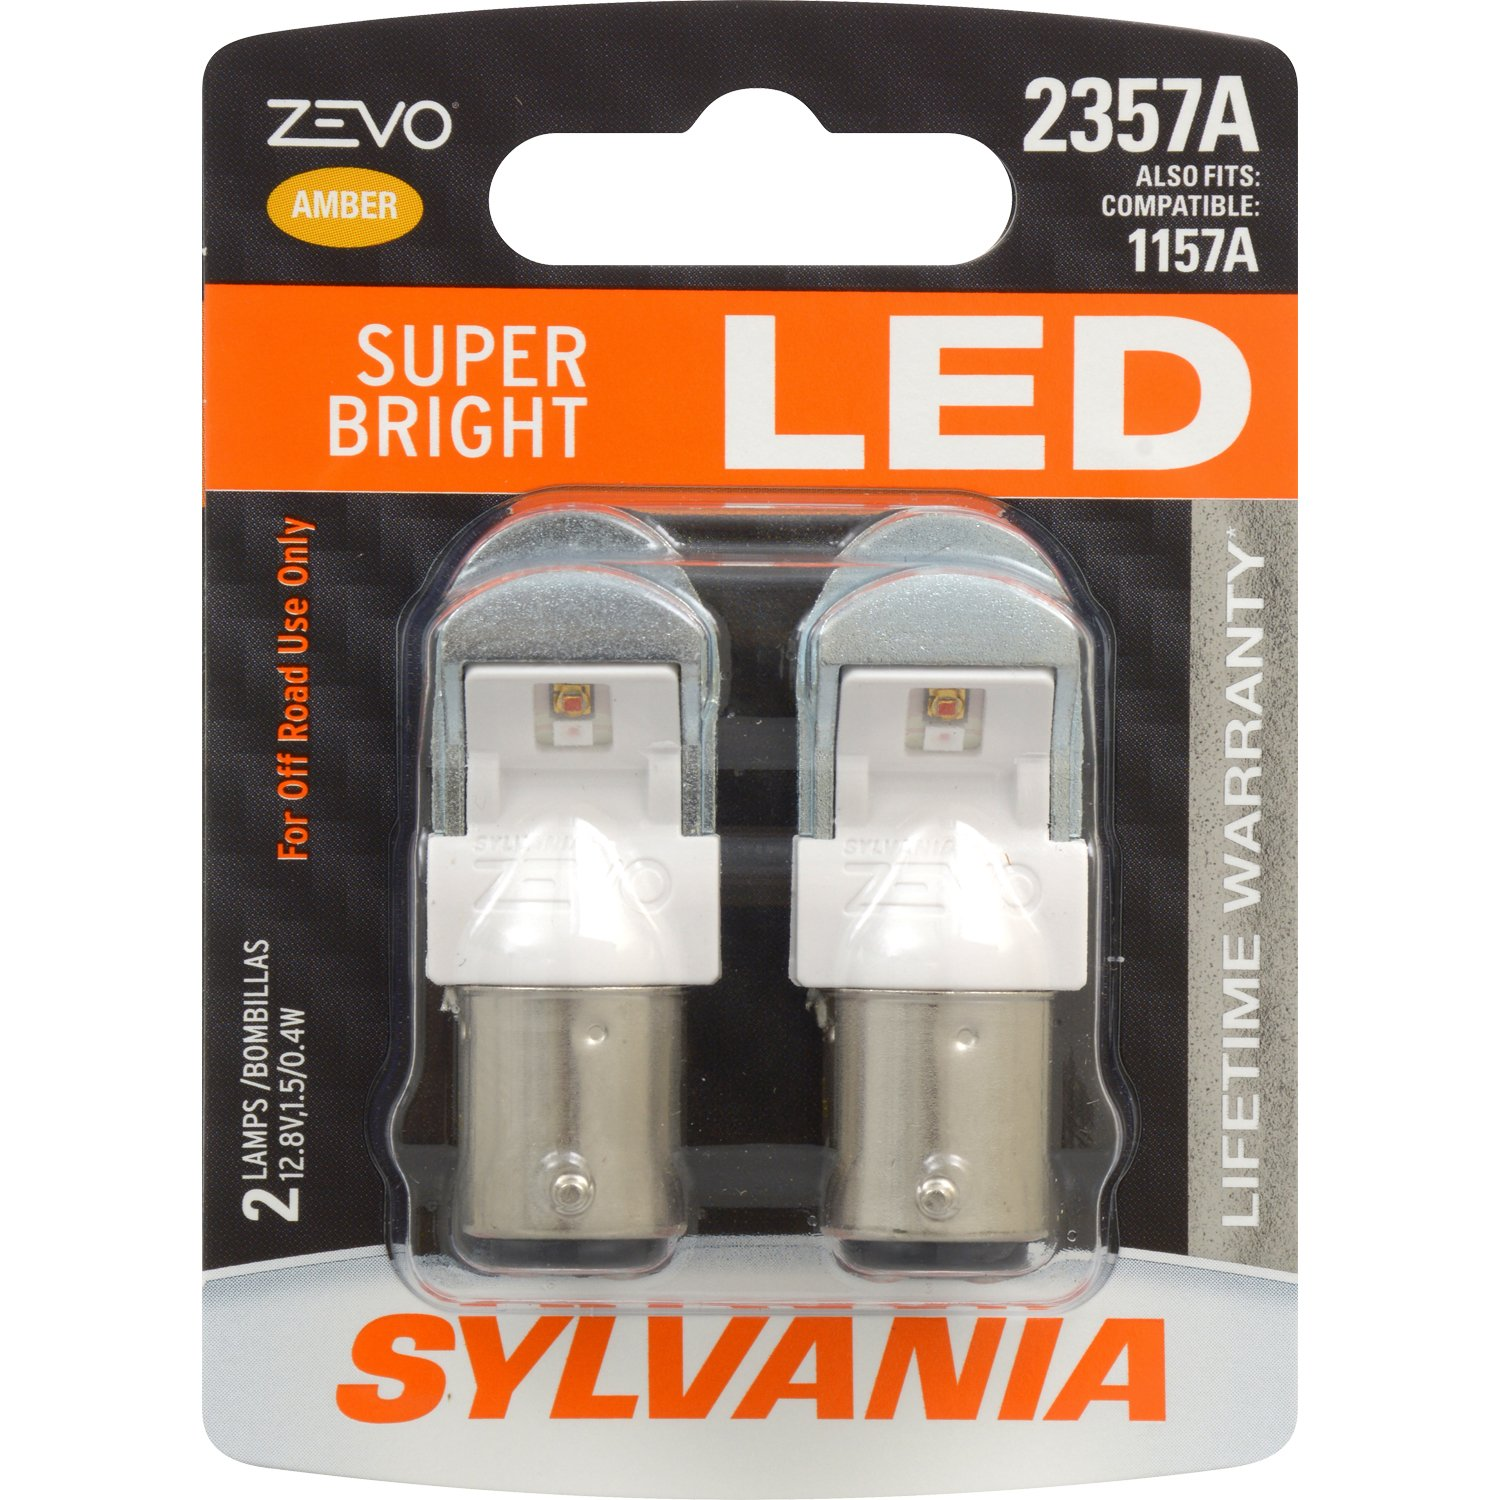 SYLVANIA Contains 2 Bulbs Ideal for Stop and Tail Lights Bright LED Bulb 2357 ZEVO LED Red Bulb